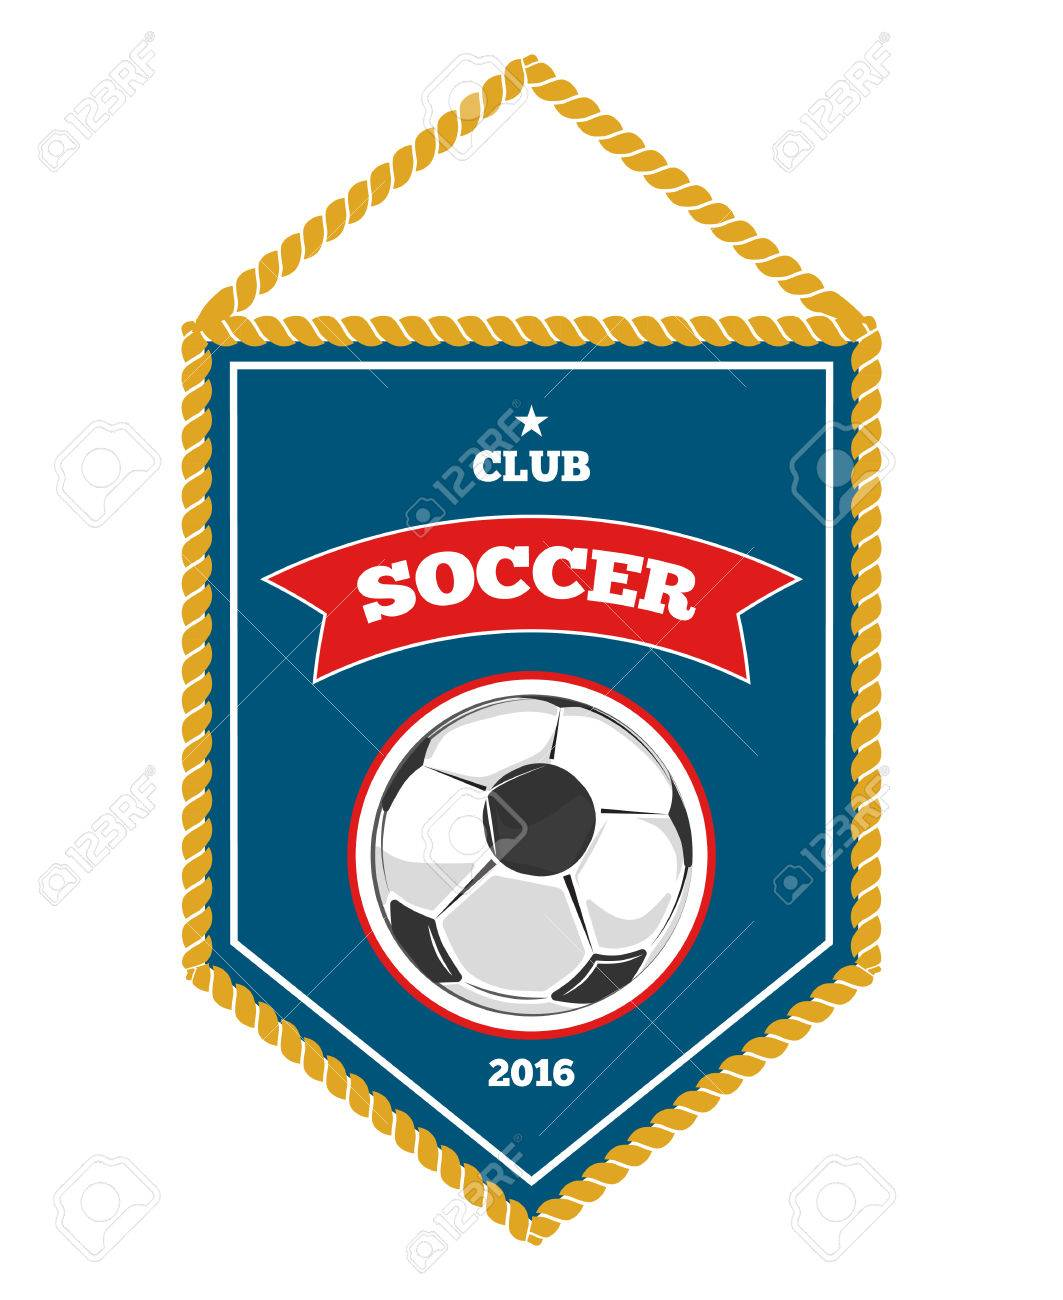 Blue Soccer Pennant Isolated White Flag Banner For Football Royalty Free Cliparts Vectors And Stock Illustration Image 61551973